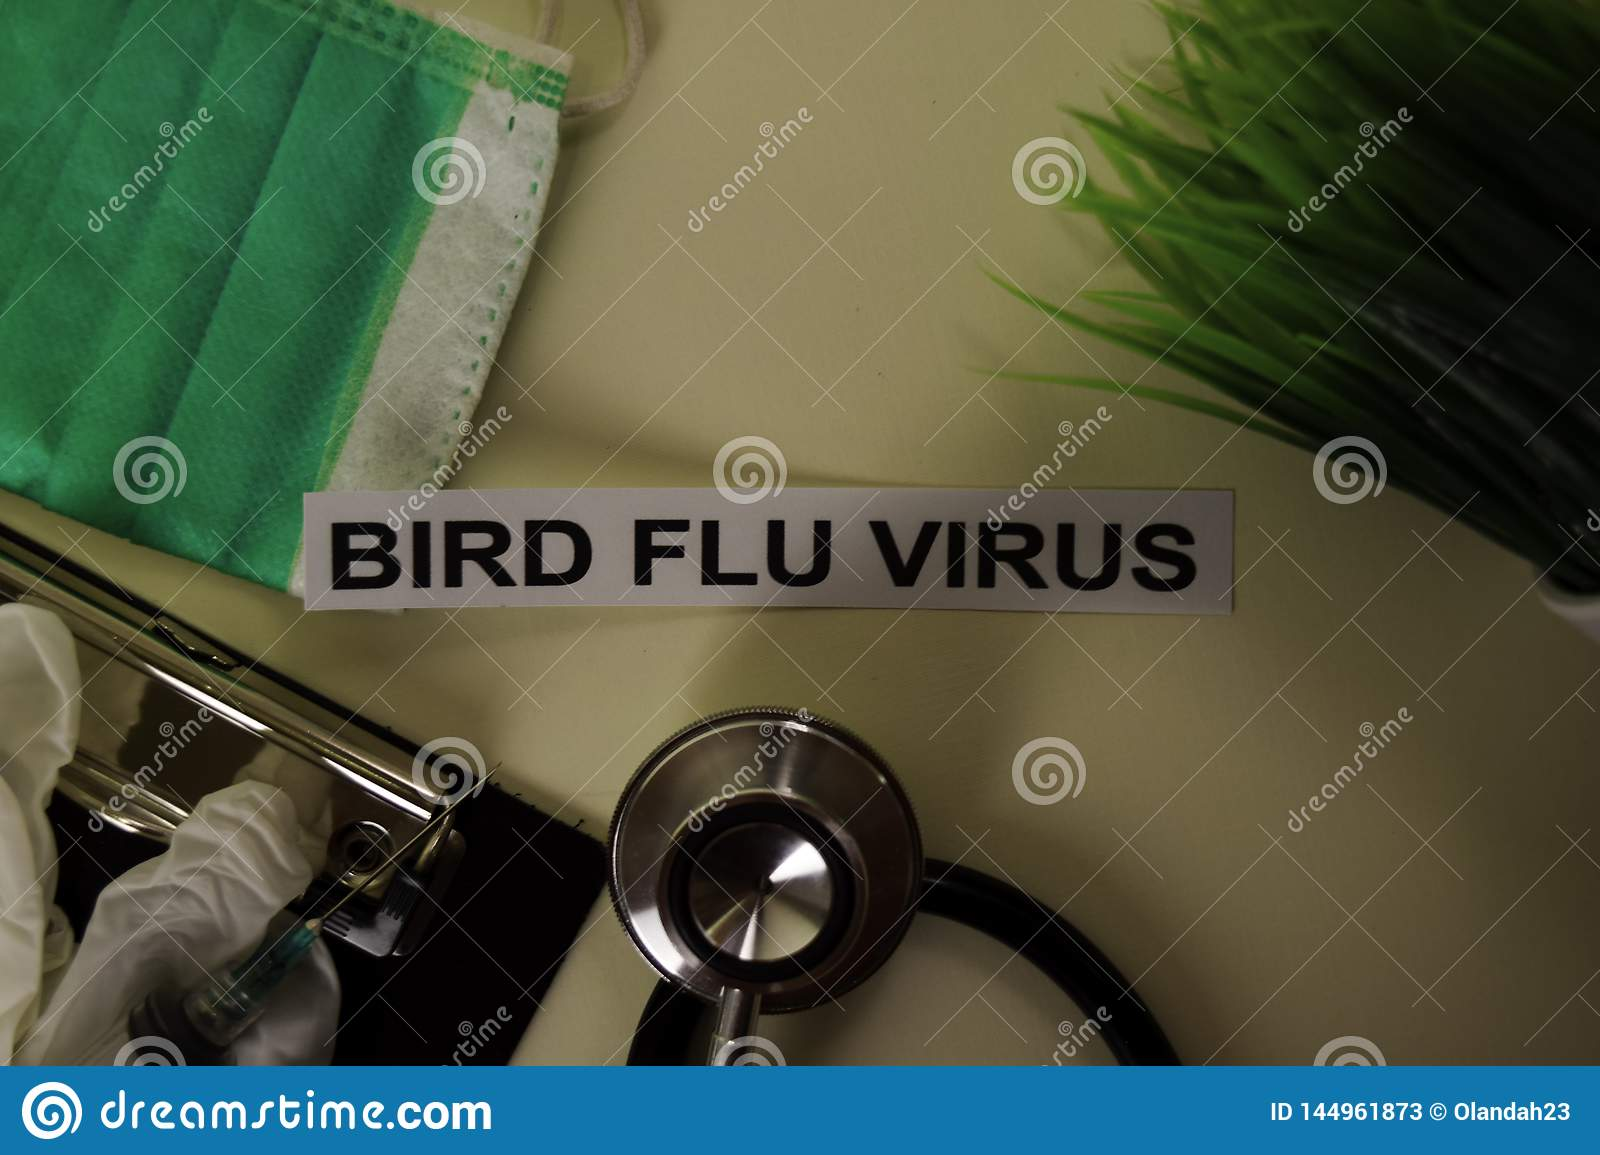 Bird Flu Virus with inspiration and healthcare/medical concept on desk background